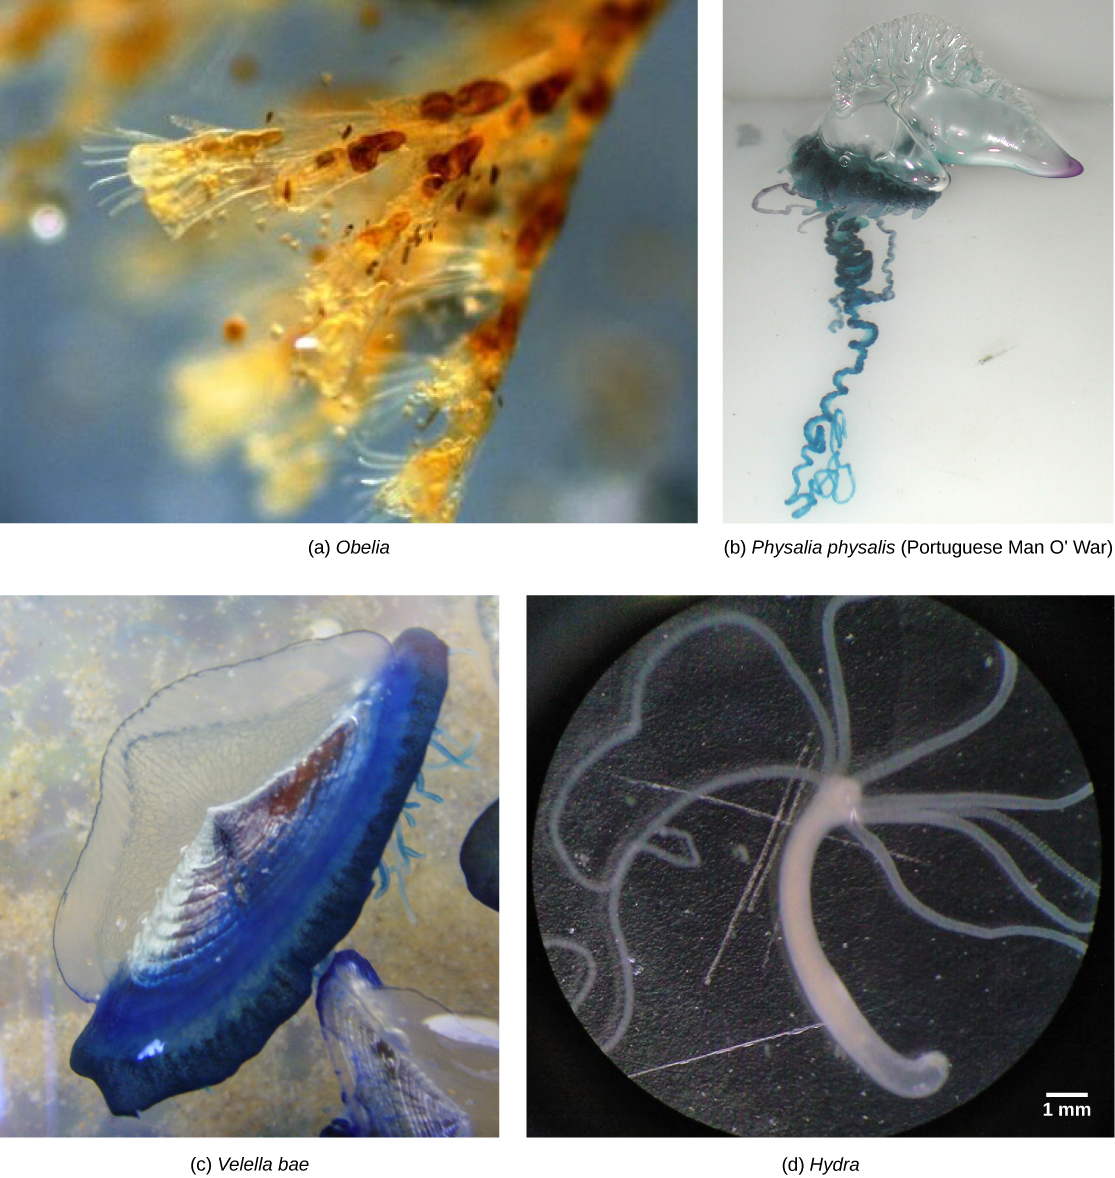 Photo a shows Obelia, which has a body composed of branching polyps. Photo b shows a Portuguese Man O War, which has ribbon-like tentacles dangling from a clear, bulbous structure, resembling an inflated plastic bag. Photo c shows Velella bae, which resembles a flying saucer with a blue bottom and a clear, dome-shaped top. Photo d shows a hydra with long tentacles, extending from a tube-shaped body.